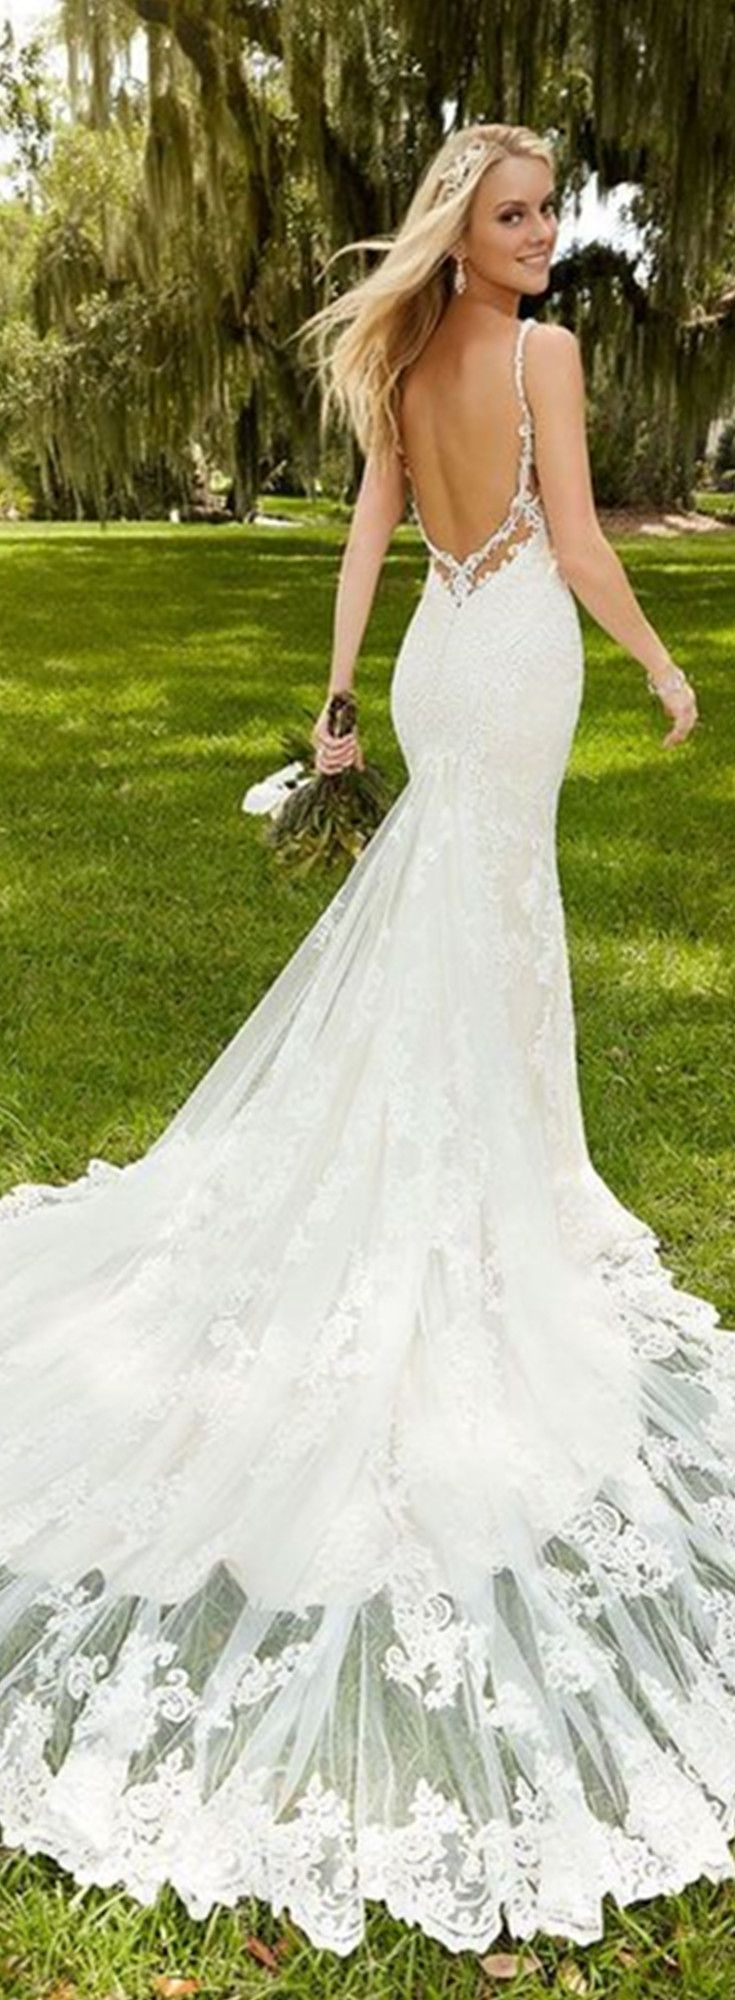 Awesome 74 Unique & Sexy Wedding Dresses